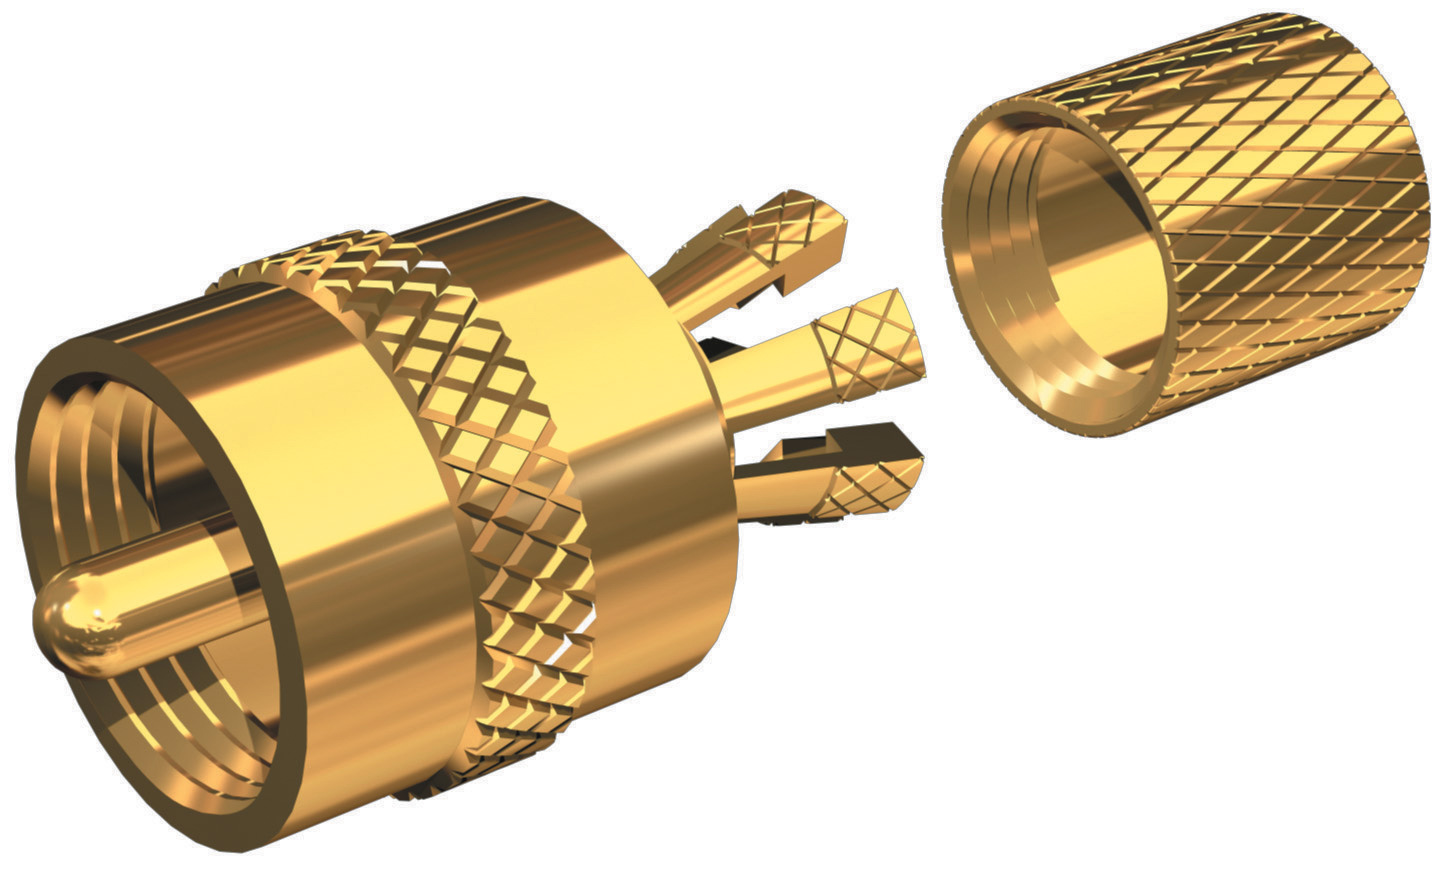 CENTERPIN PL259 CONNECTOR GOLD PLATED